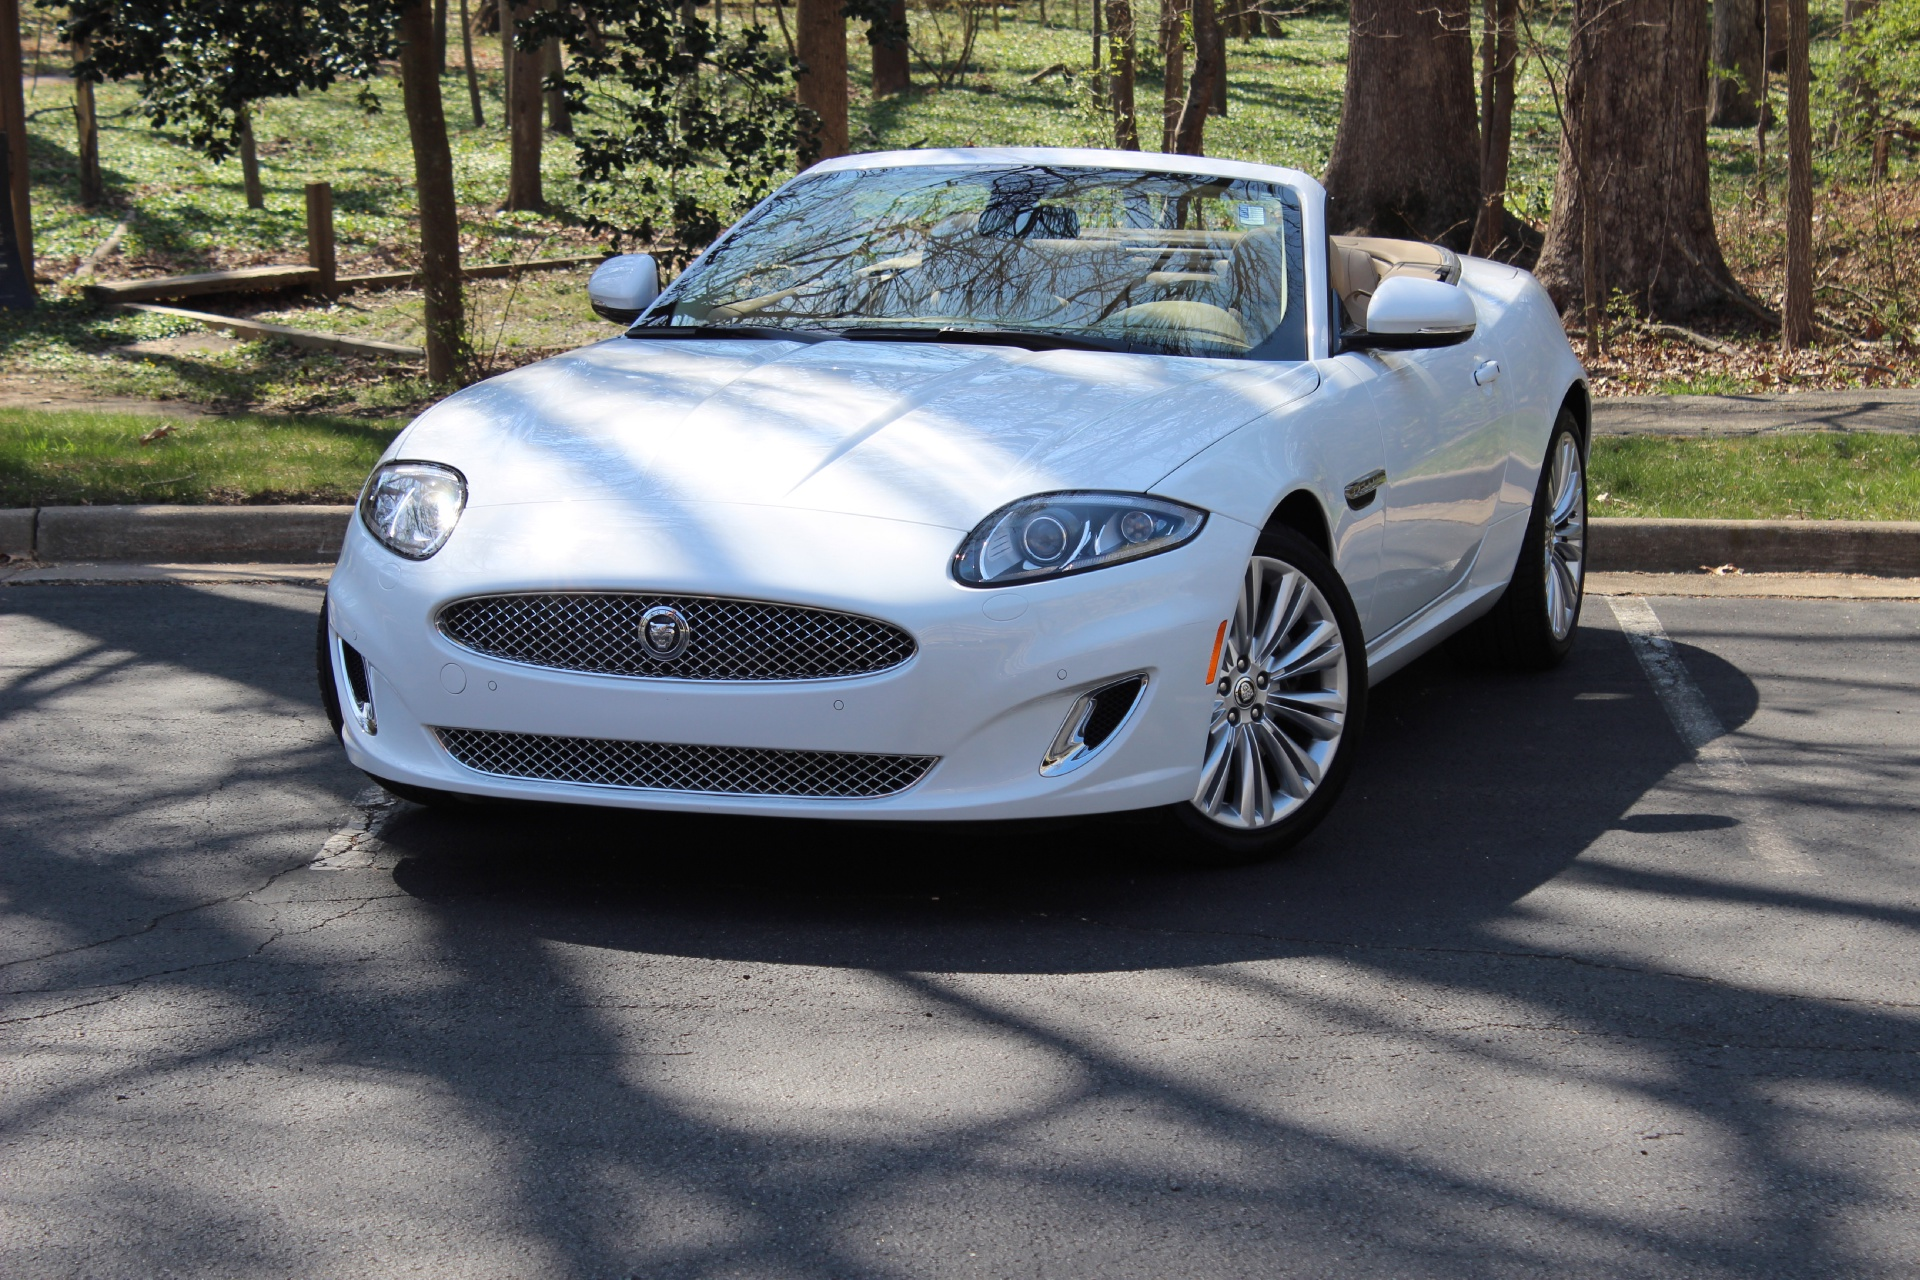 xkr best jaguar photo for forums b by model xk year sale forum esses group shots speed brian used enthusiasts